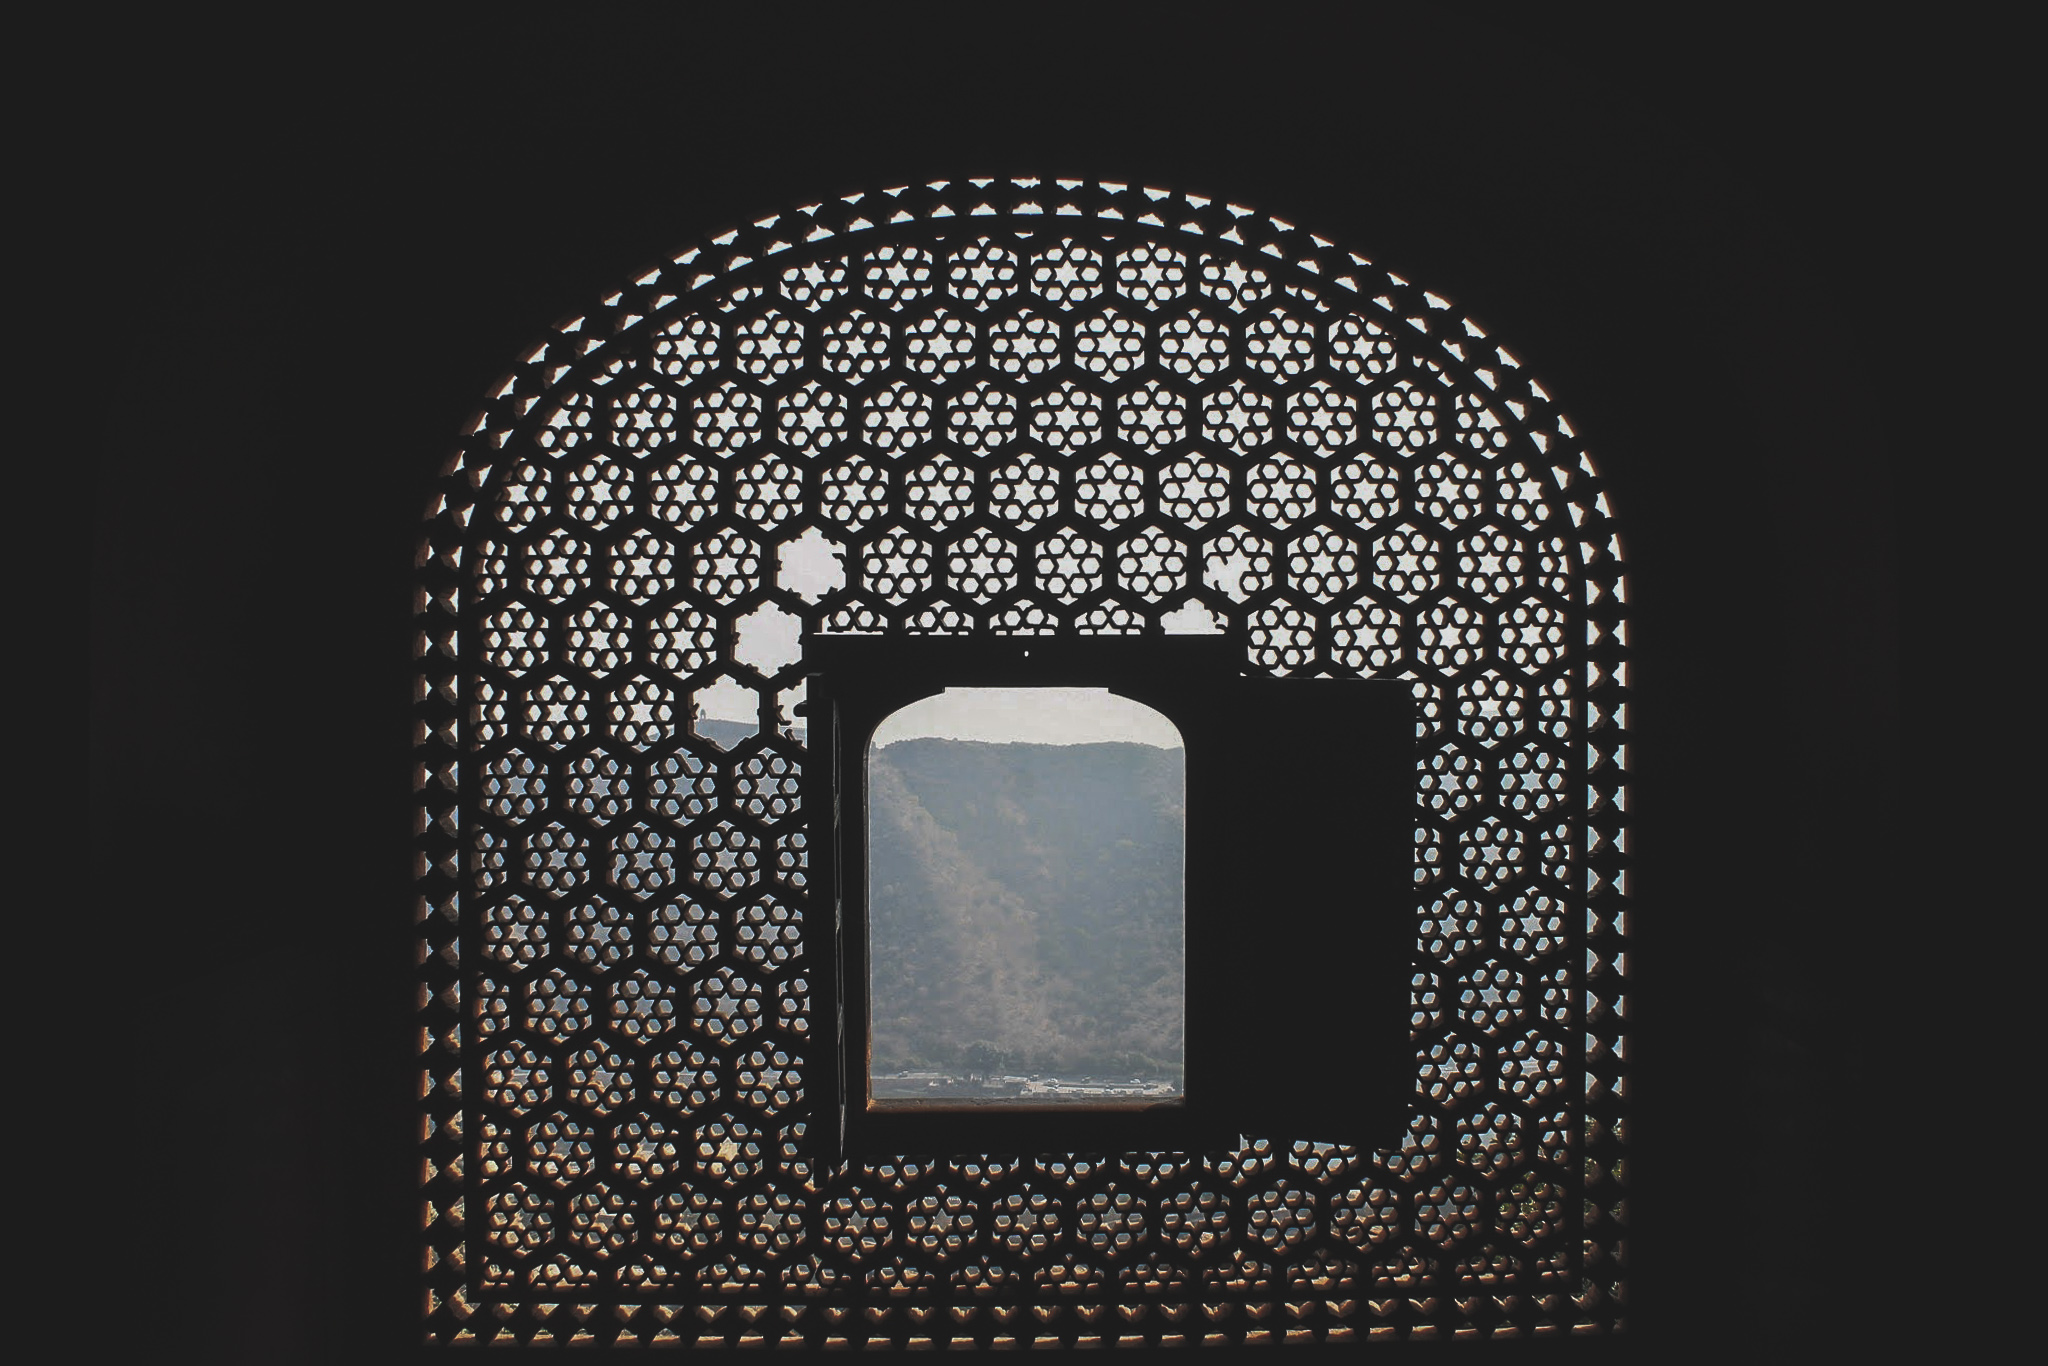 A window at Amber Fort